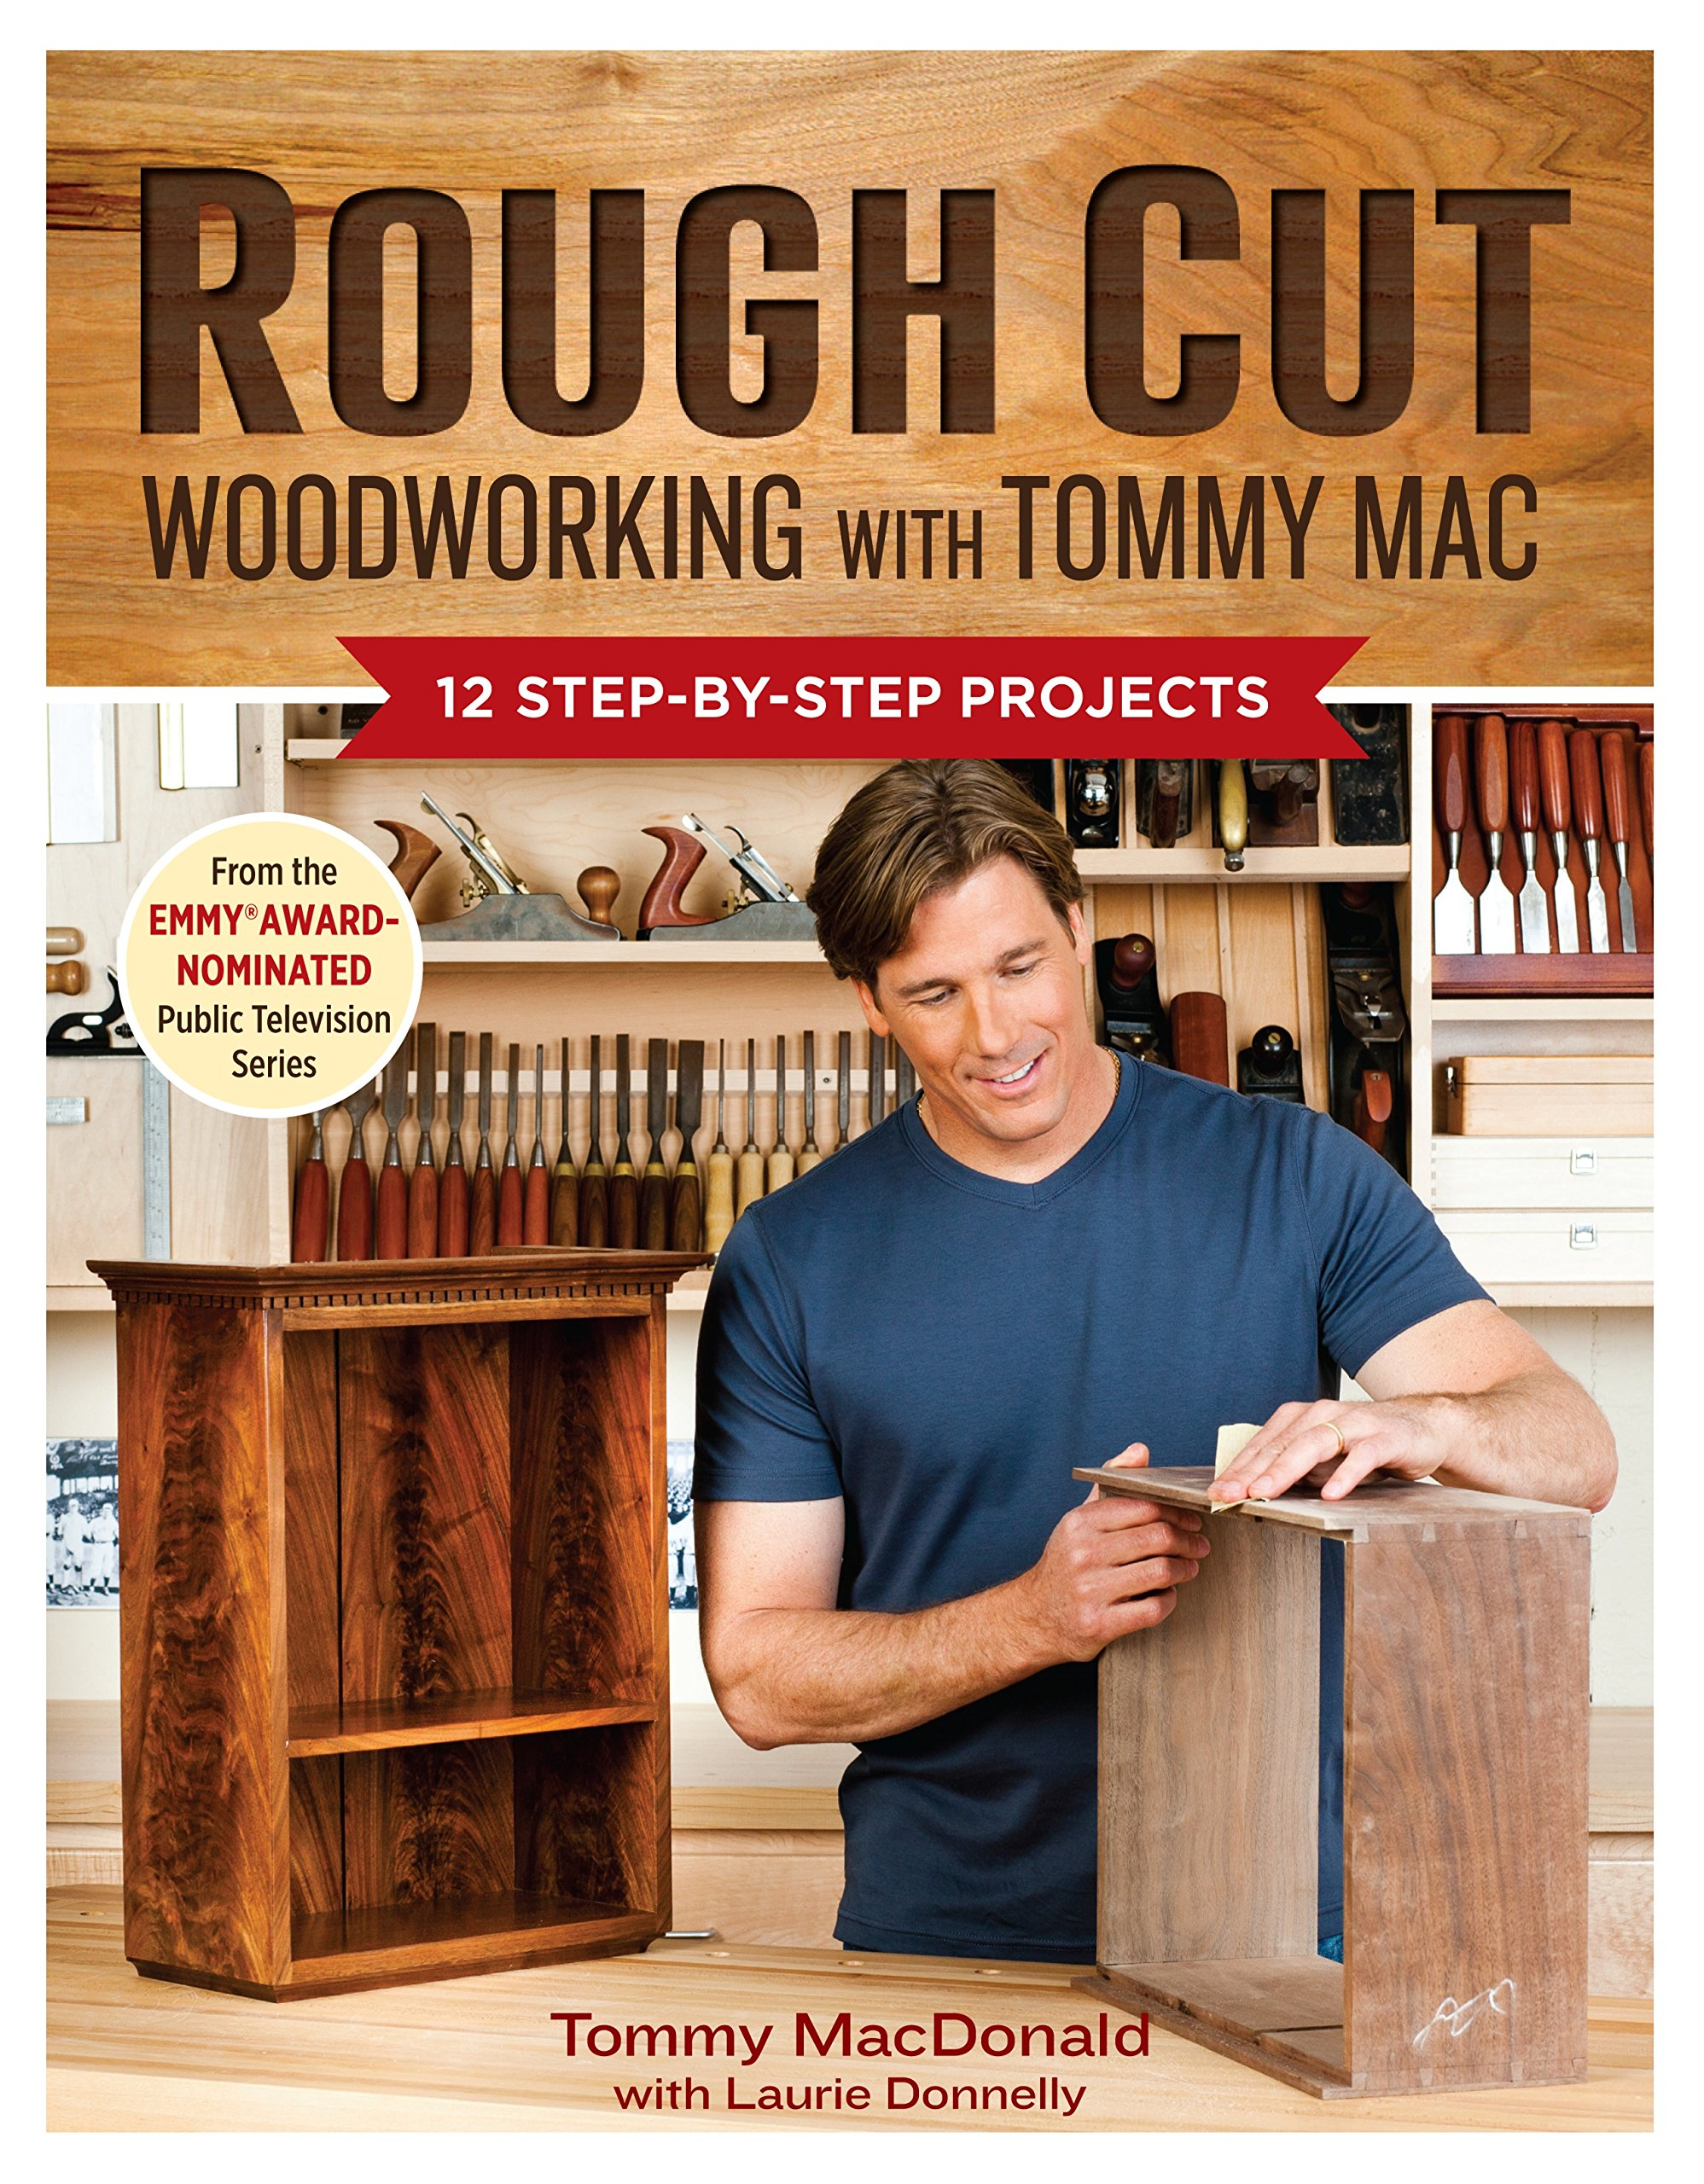 Rough Cut Woodworking With Tommy Mac 12 Step By Step Projects Macdonald Tommy Donnelly Laurie 9781600854163 Amazon Com Books